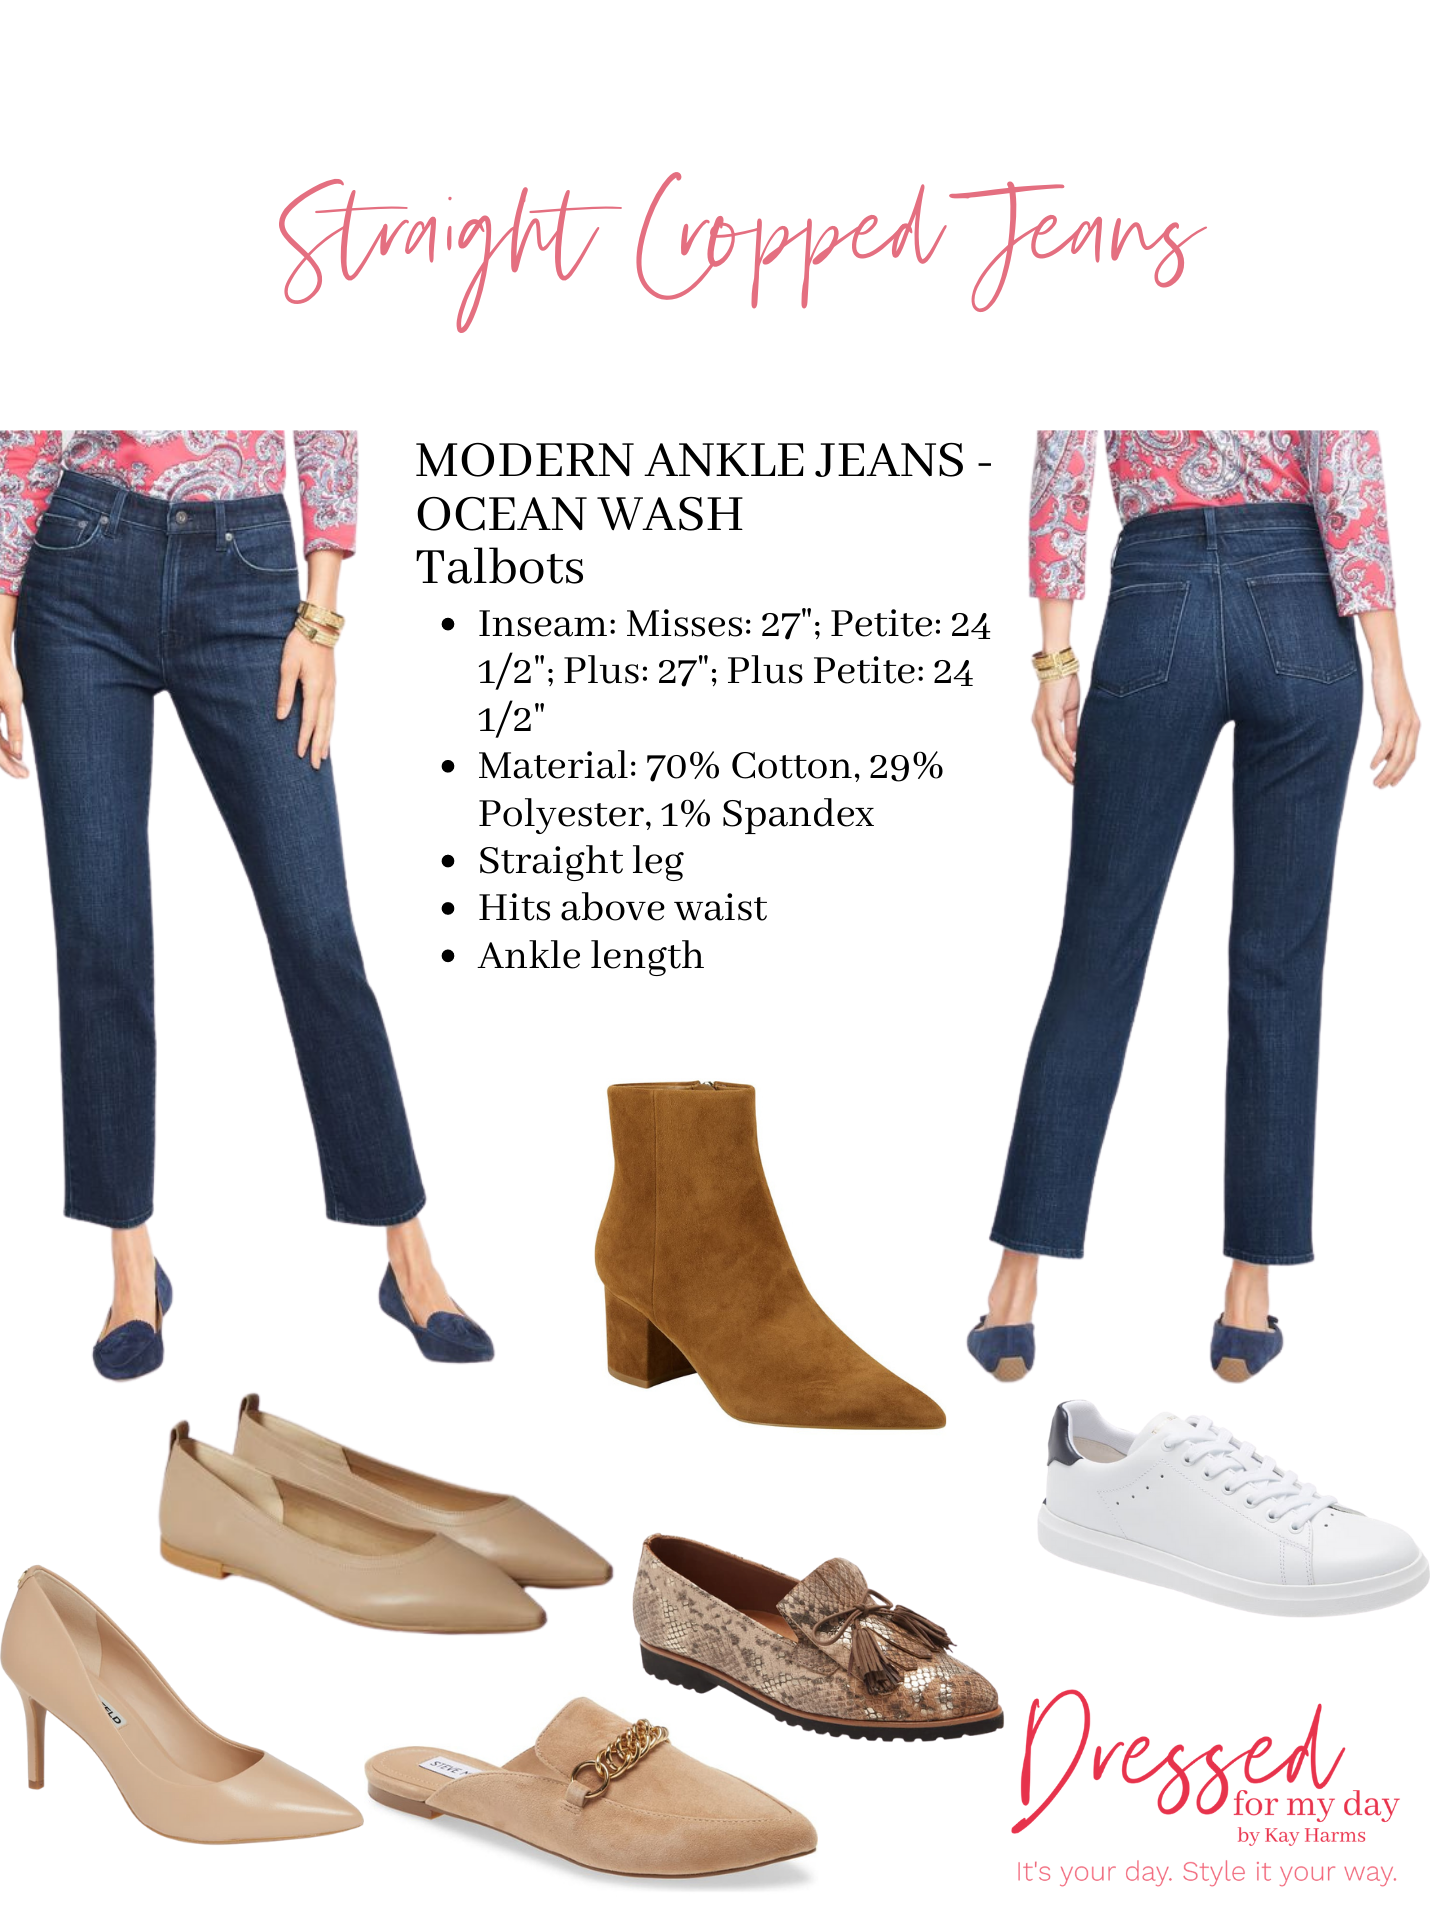 Shoes to Wear with Straight Leg Crop Jeans